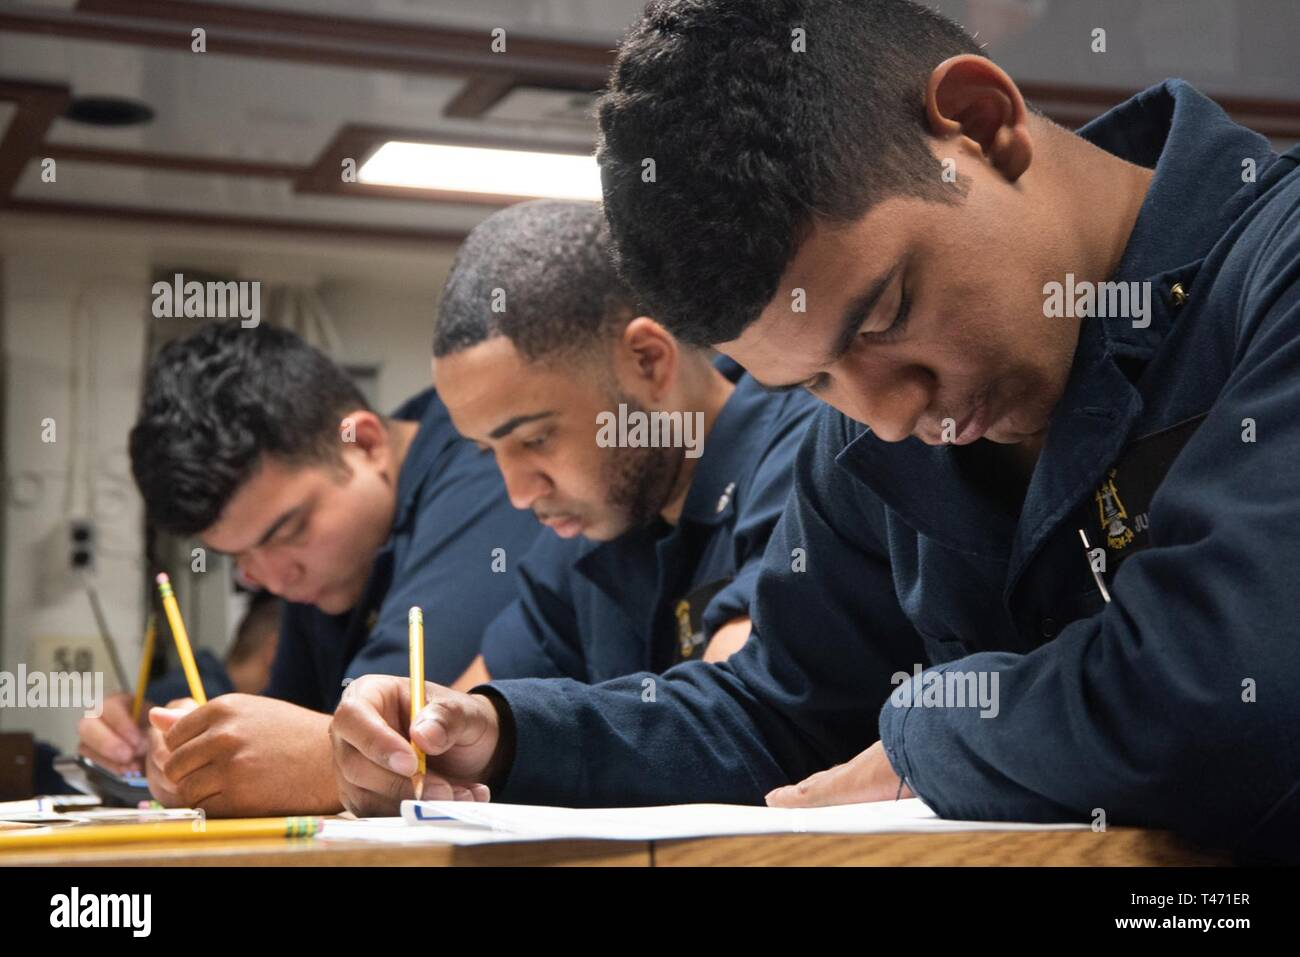 SOUTH CHINA SEA (March 14, 2019) Mineman 3rd Justin Colon (right), from Brooklyn, New York, takes the Navy-wide petty officer 2nd class advancement exam on the mess deck of the Avenger-class mine countermeasures ship USS Chief (MCM 14). Chief, part of Mine Countermeasure Squadron 7, is operating in the Indo-Pacific region to enhance interoperability with partners and serve as a ready-response platform for contingency operations. - Stock Image